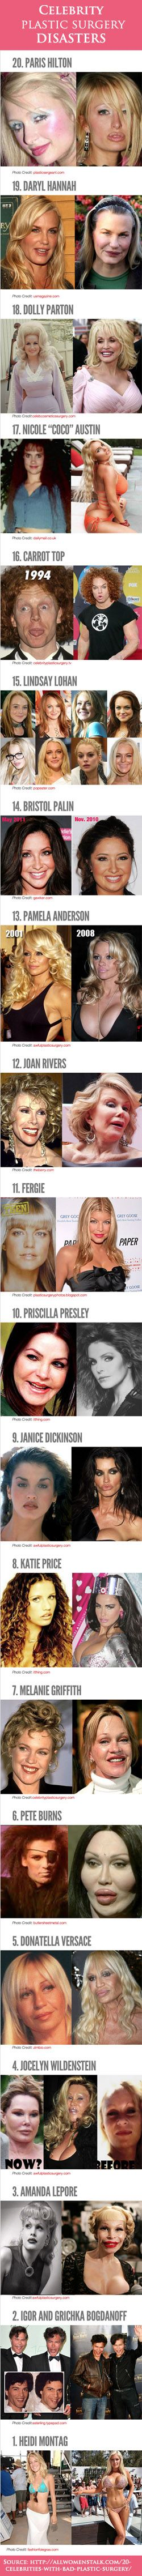 Celebrity plastic surgery disasters! Some of these are ridiculous lol